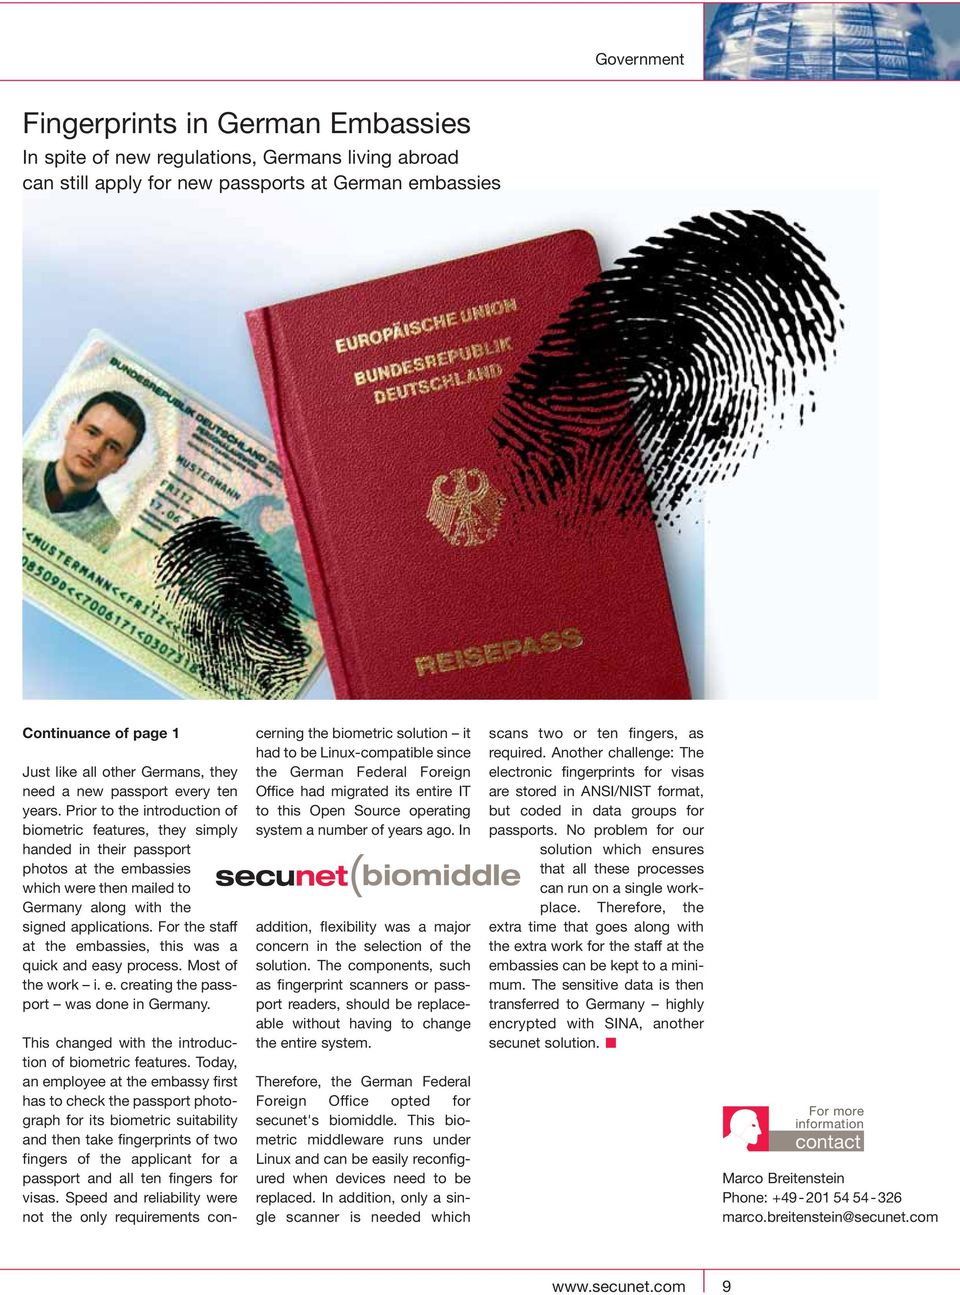 Prior to the introduction of biometric features, they simply handed in their passport photos at the embassies which were then mailed to Germany along with the signed applications.